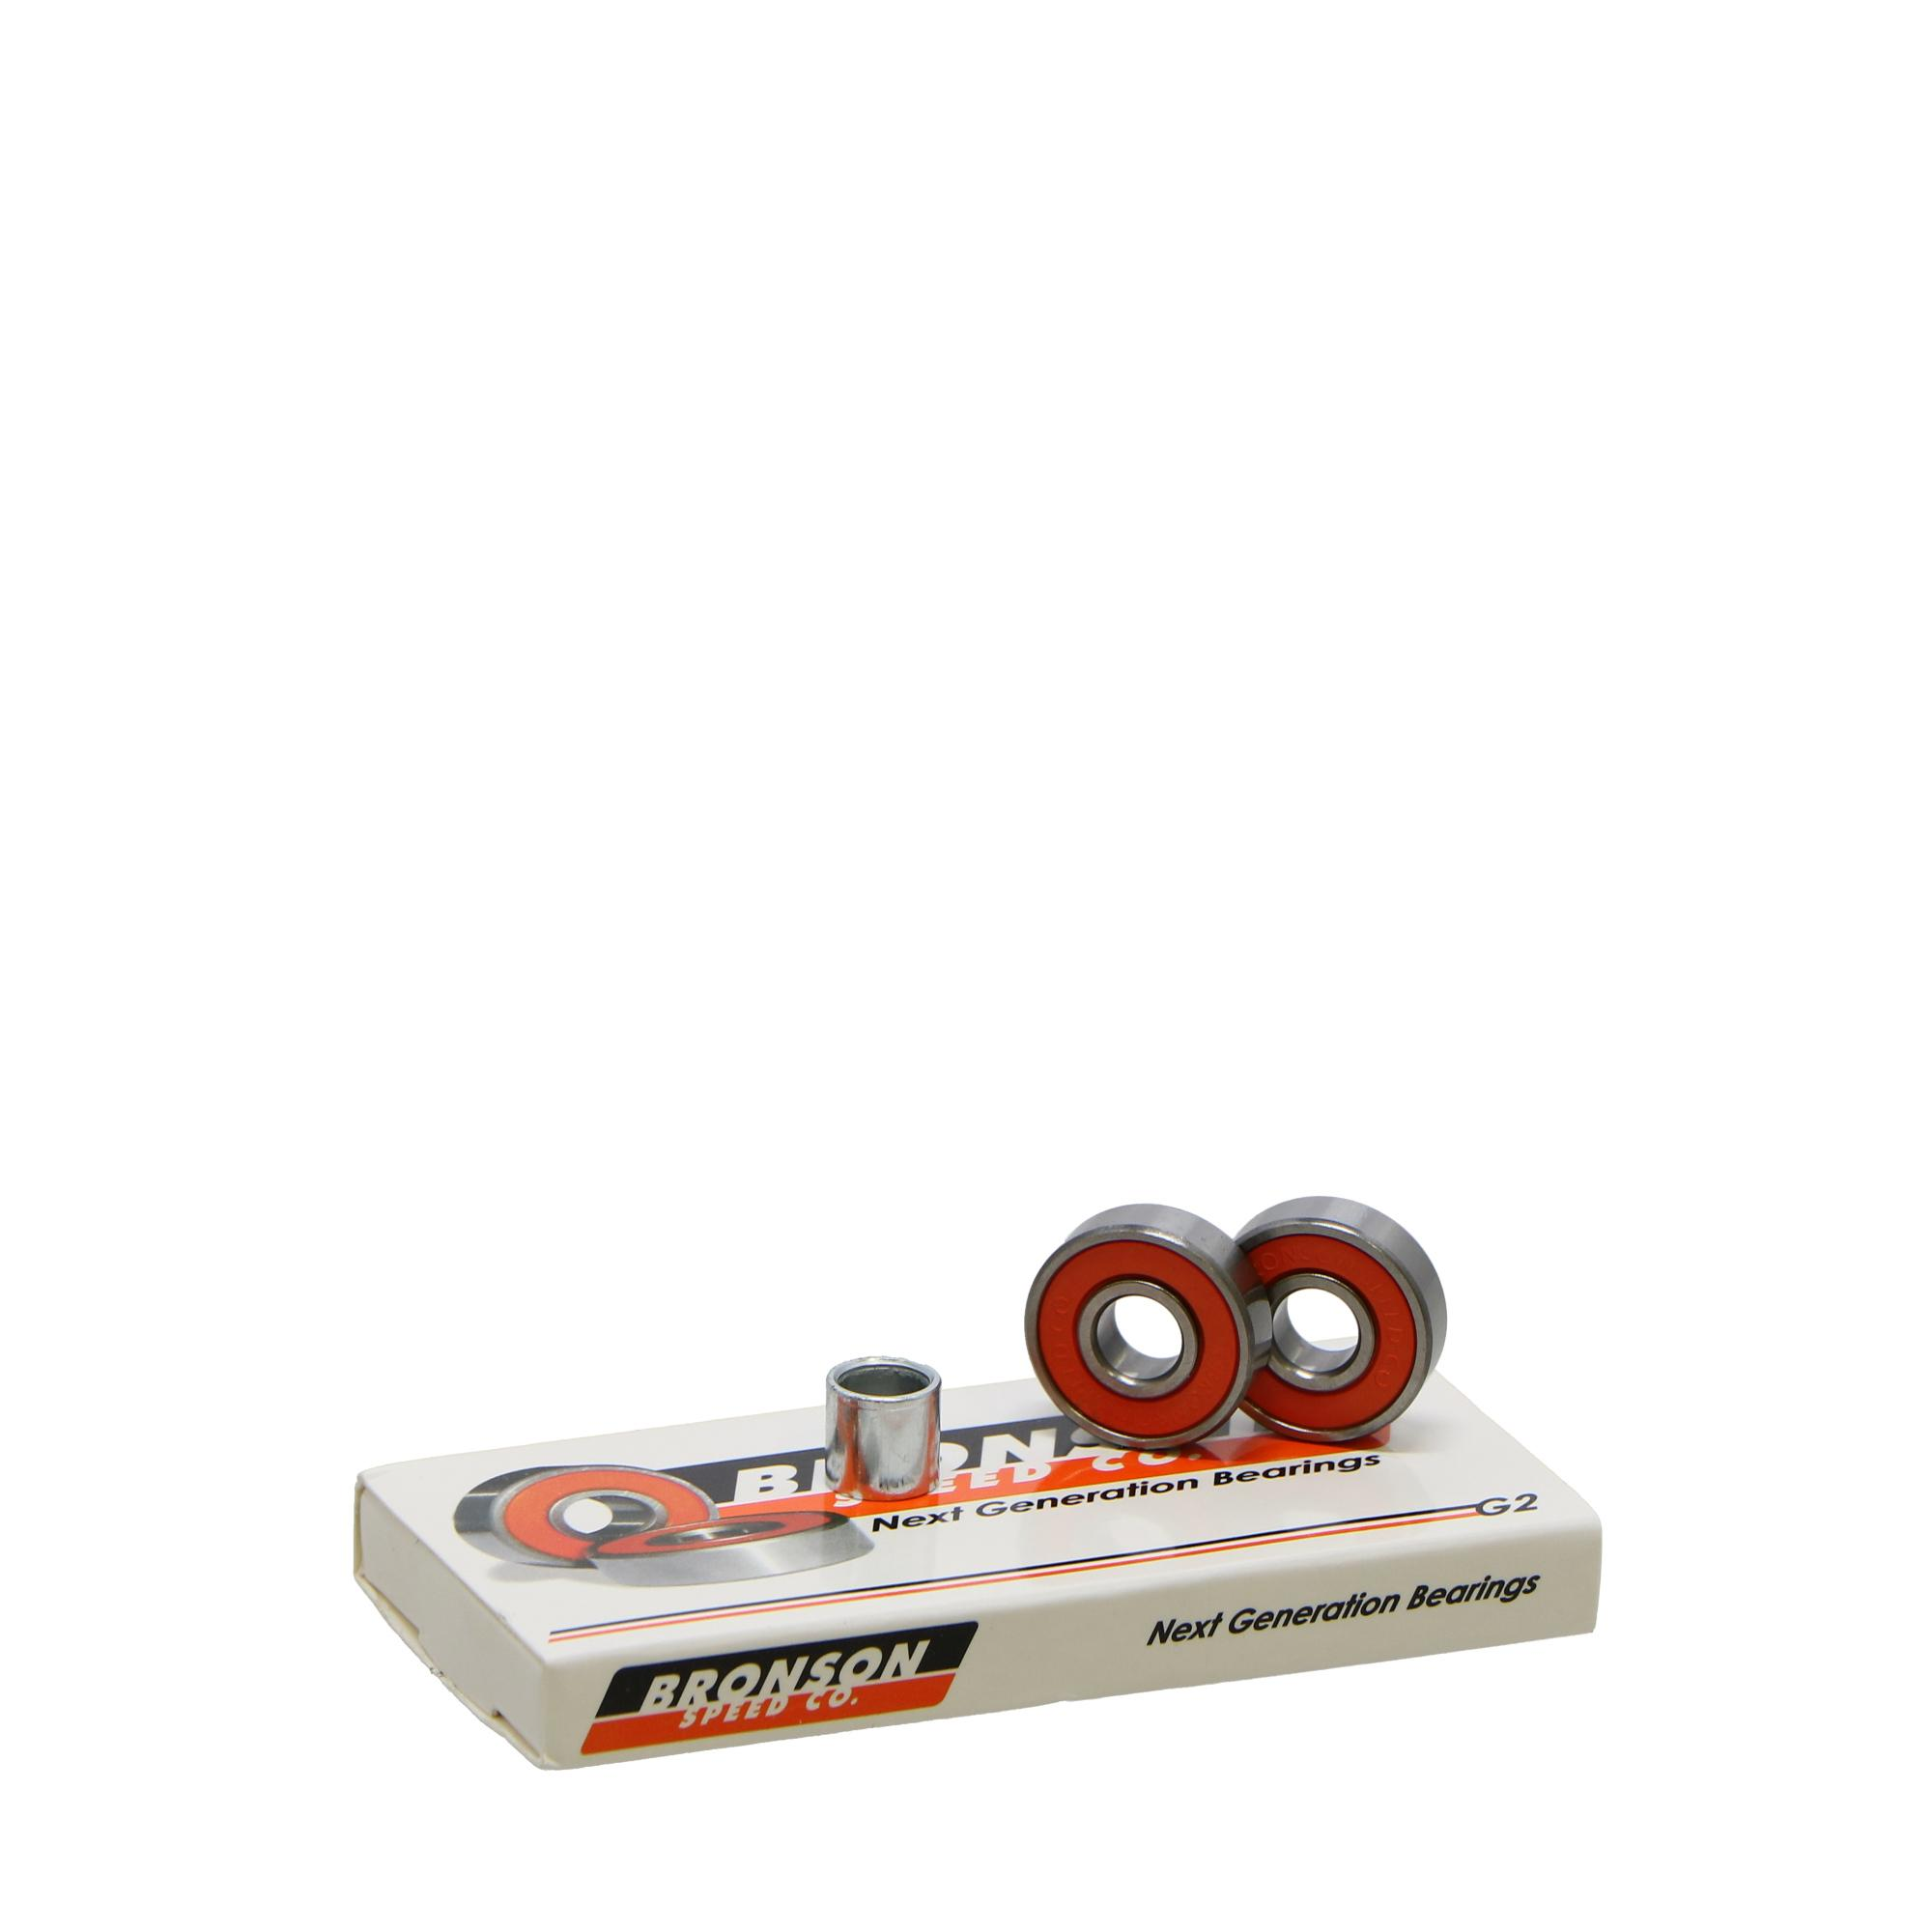 Bronson Bearing Speed Co G2 ASSORTED